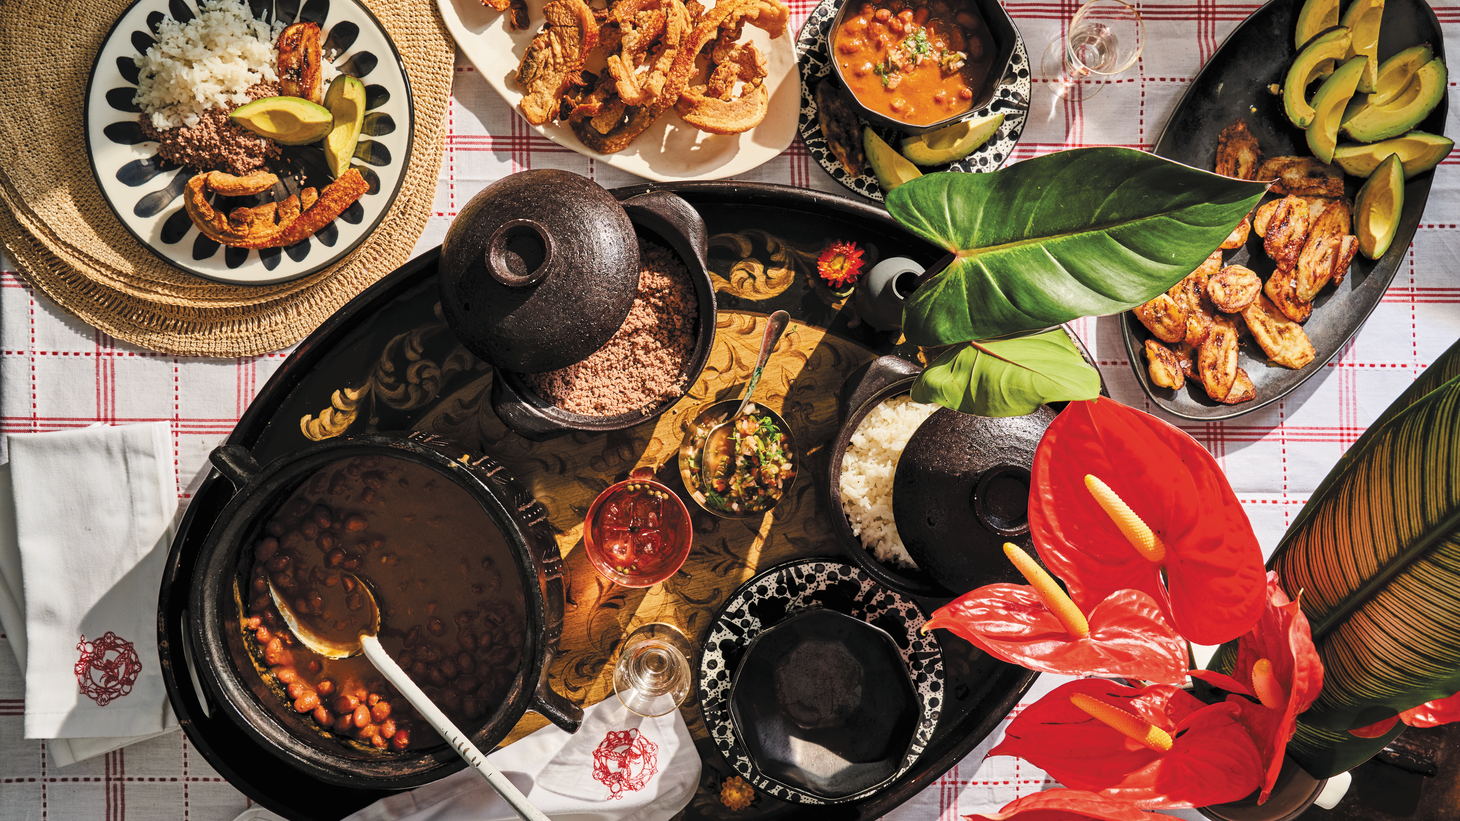 """With grilled arepitas and tomato coriander jam, red bean soup with brisket dust, pork belly, sweet plantains, white rice and ají, Mariana Velàsquez curates a menu that pays homage to Medellín, Colombia. Her new cookbook is """"Colombiana."""""""